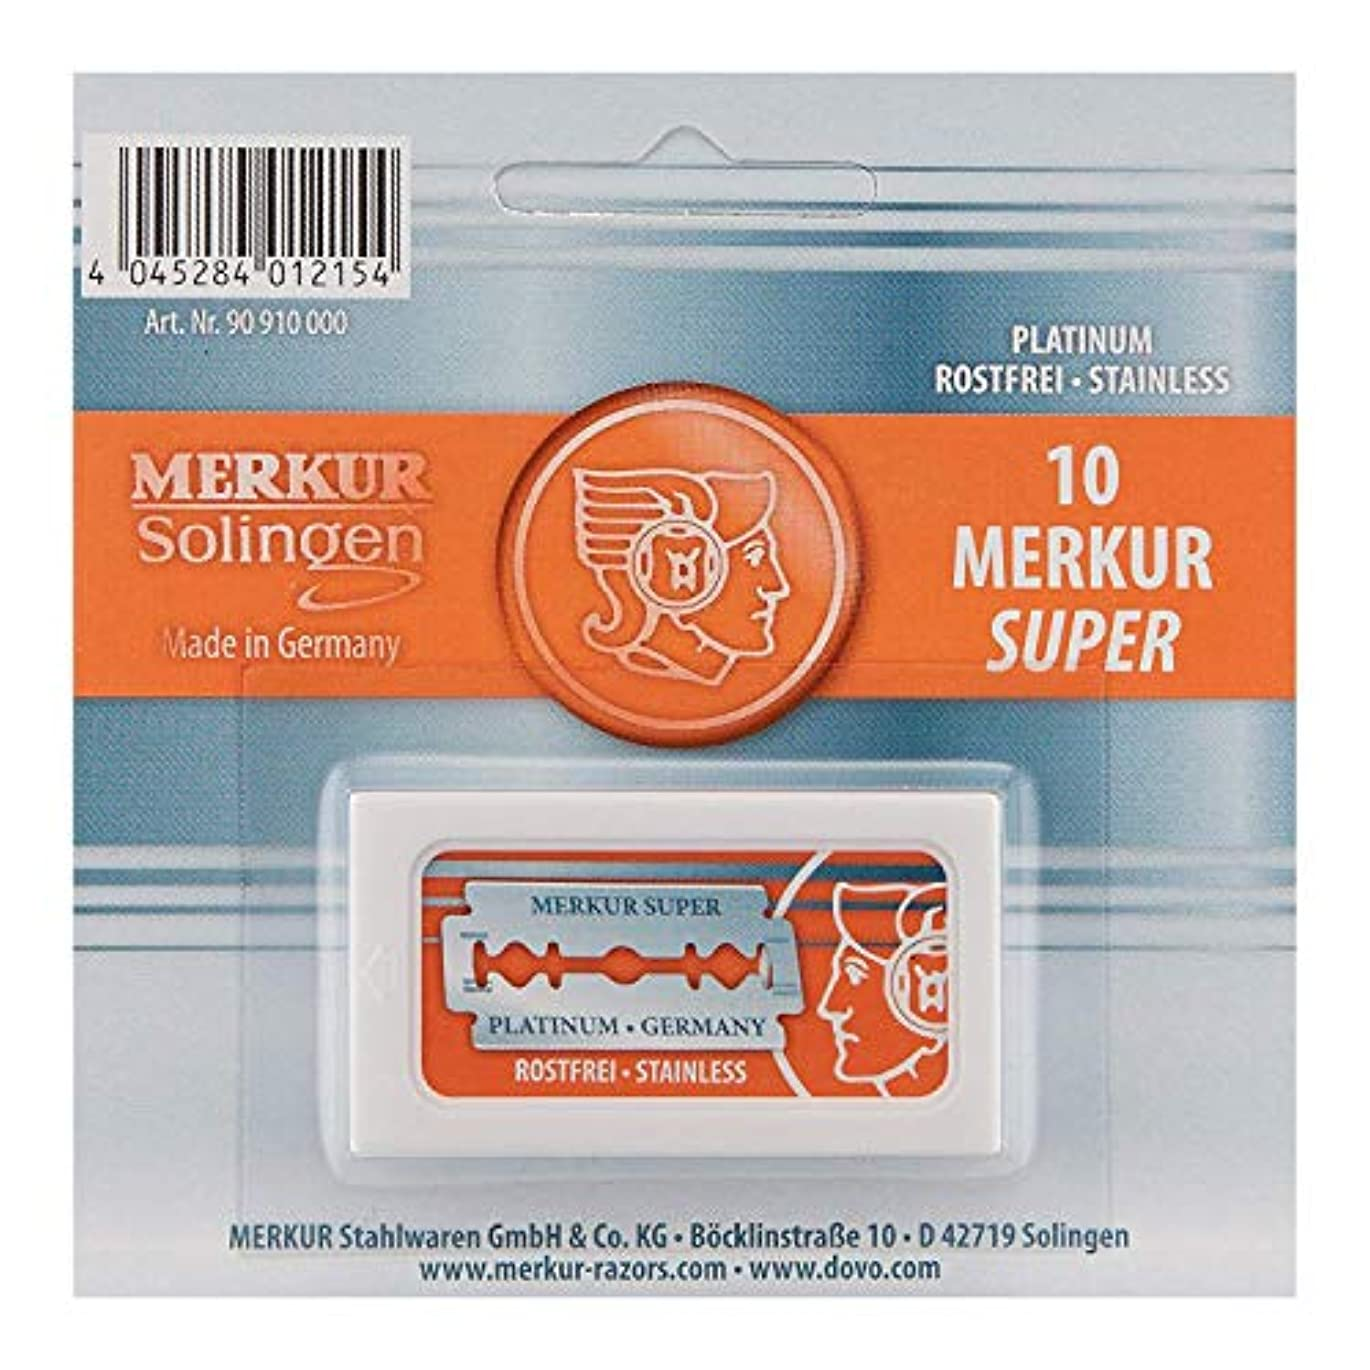 象菊すばらしいですMerkur Stainless Platinum Safety Razor Blades 10 Pack